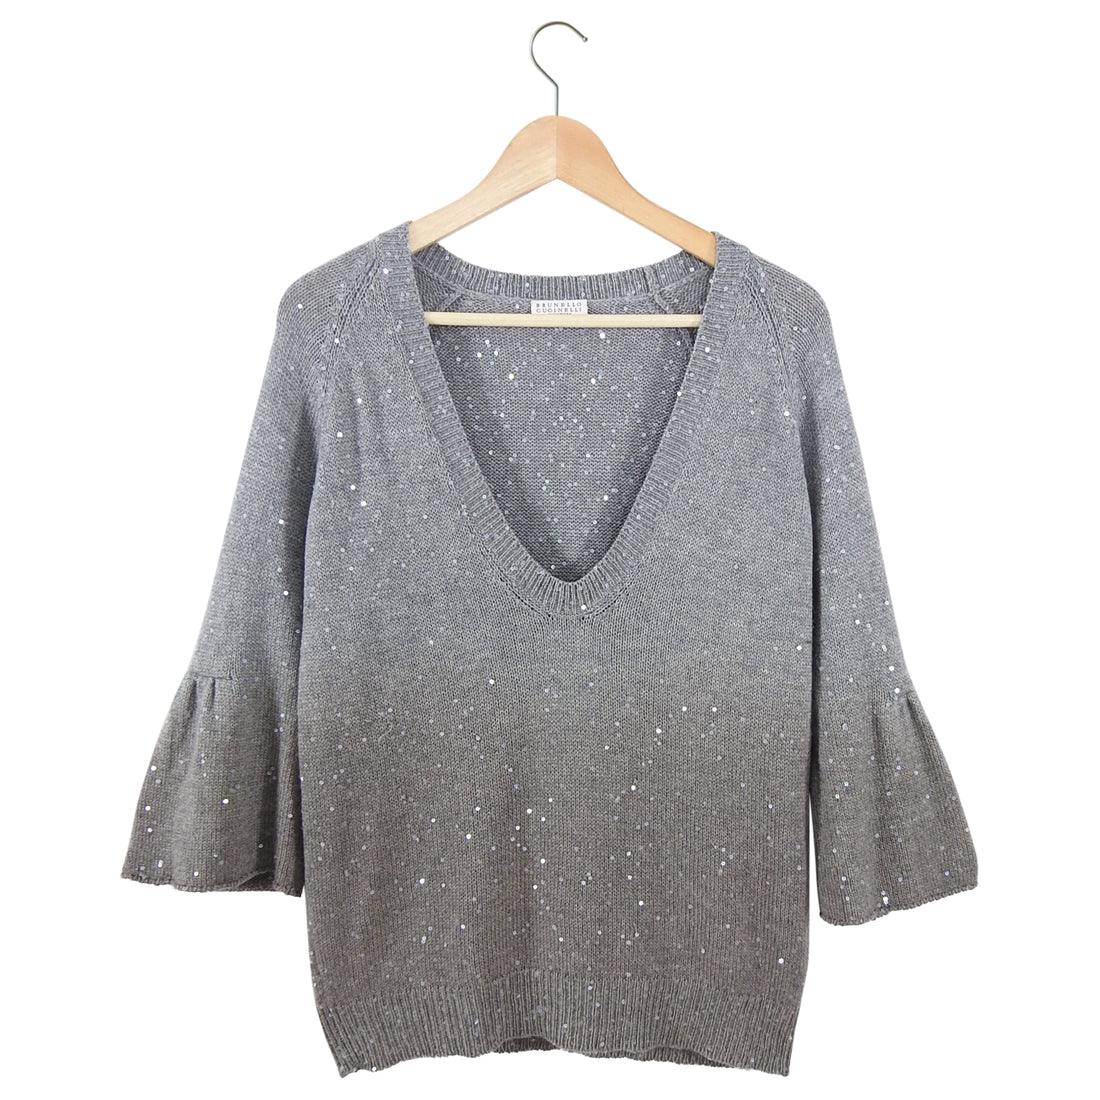 Brunello Cucinelli Grey Cashmere Sequin Ombre V-neck Sweater - L (8/10)